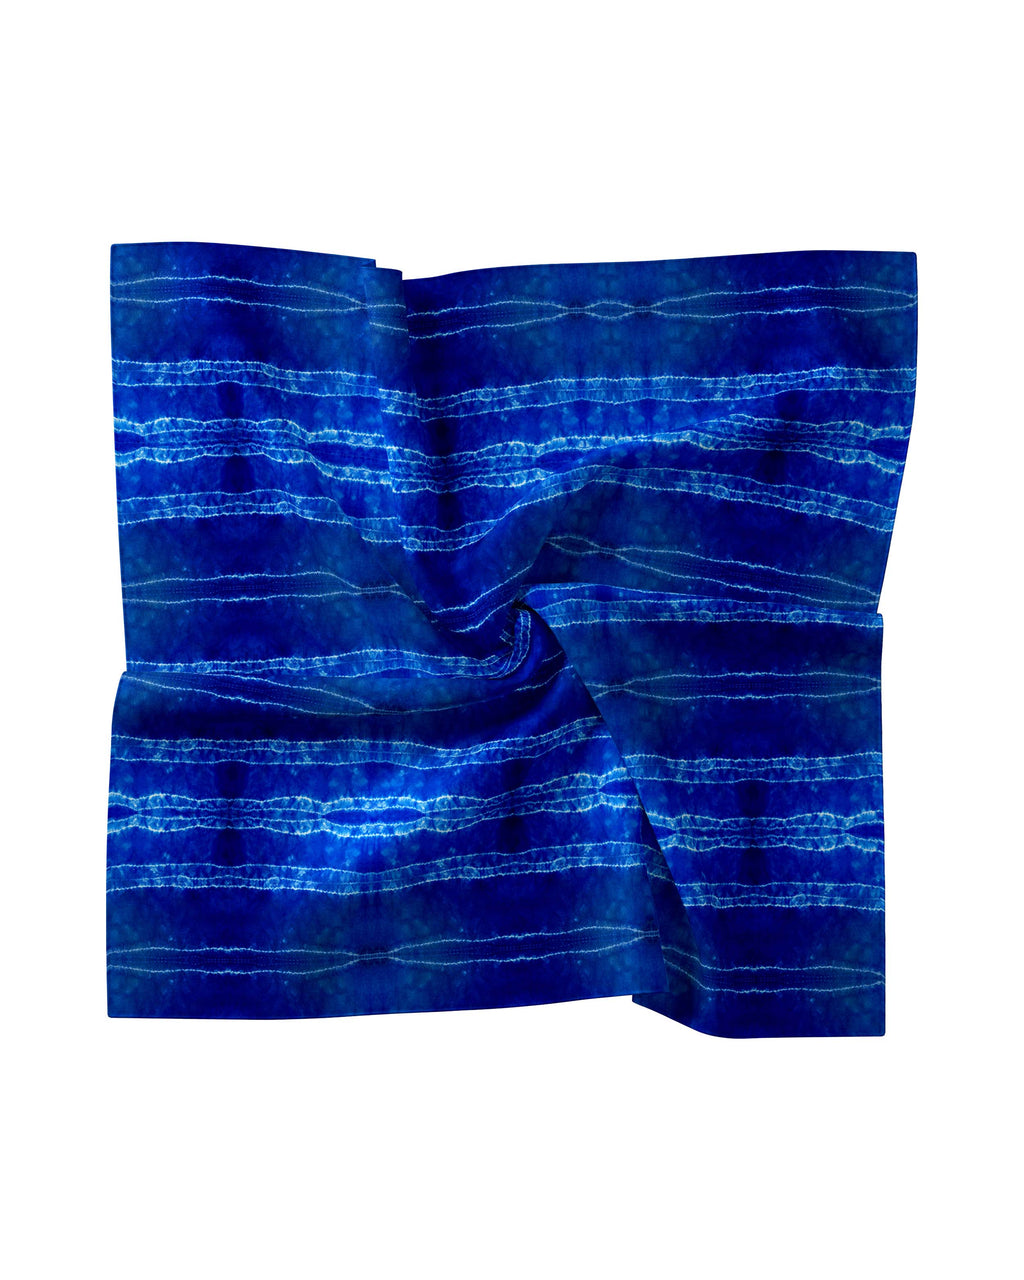 AC10002 - SHIBORI STRIPE SILK BLEND SCARF - accessories - scarves - Made from leftover fabric from our Summer 2020 collection, these scarves are the perfect addition to your warm weather wardrobe. Choose from 7 different colorways. Style as a head scarf, tie it on your beach bag, or just throw around your neck.The possibilities are endless.